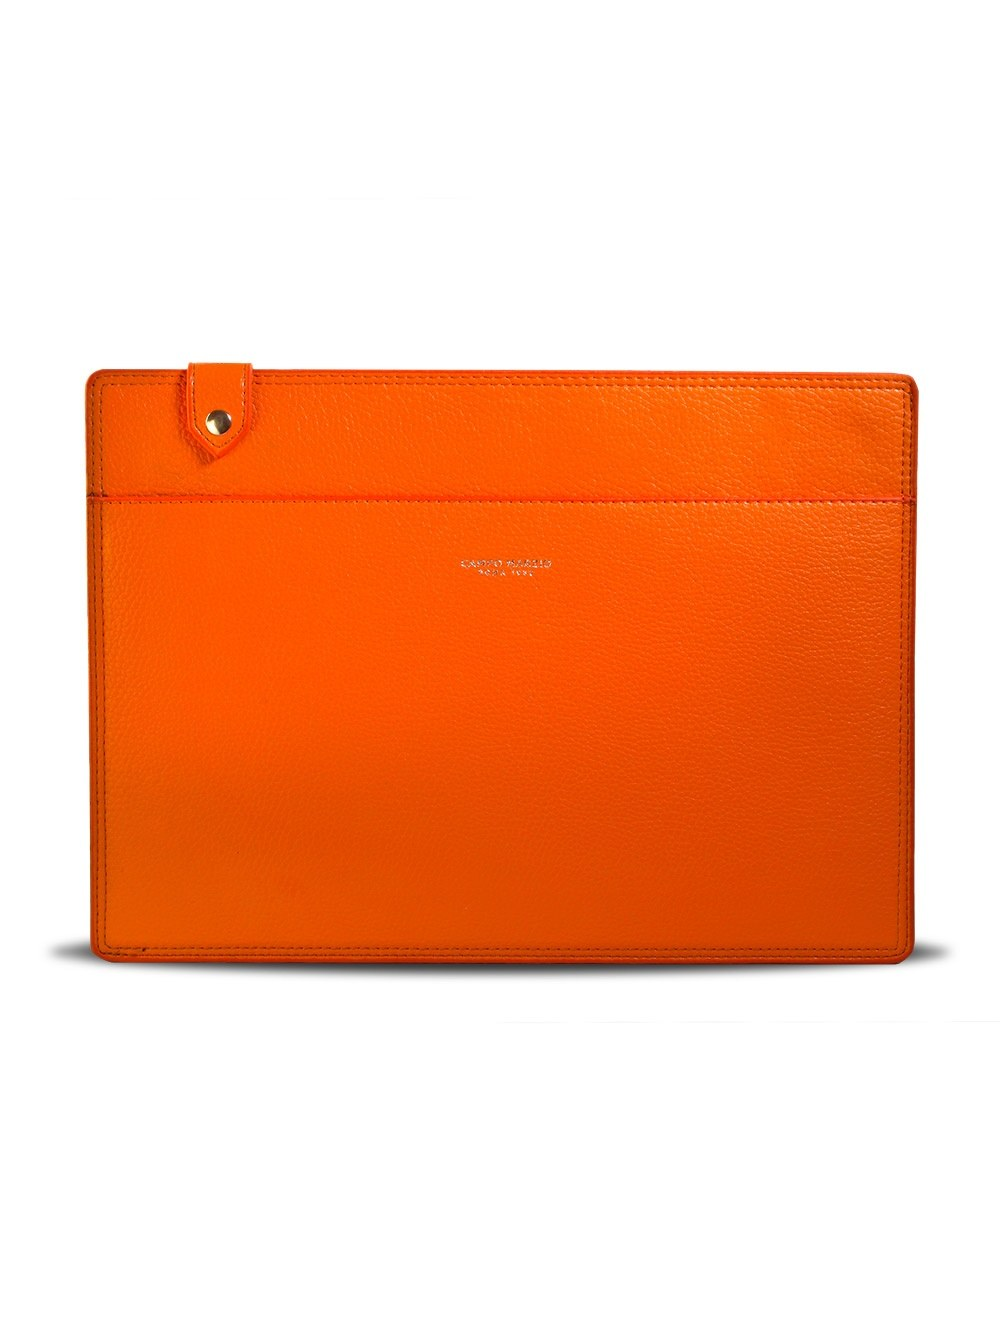 Japanese Document Holder Double Color - Mandarin